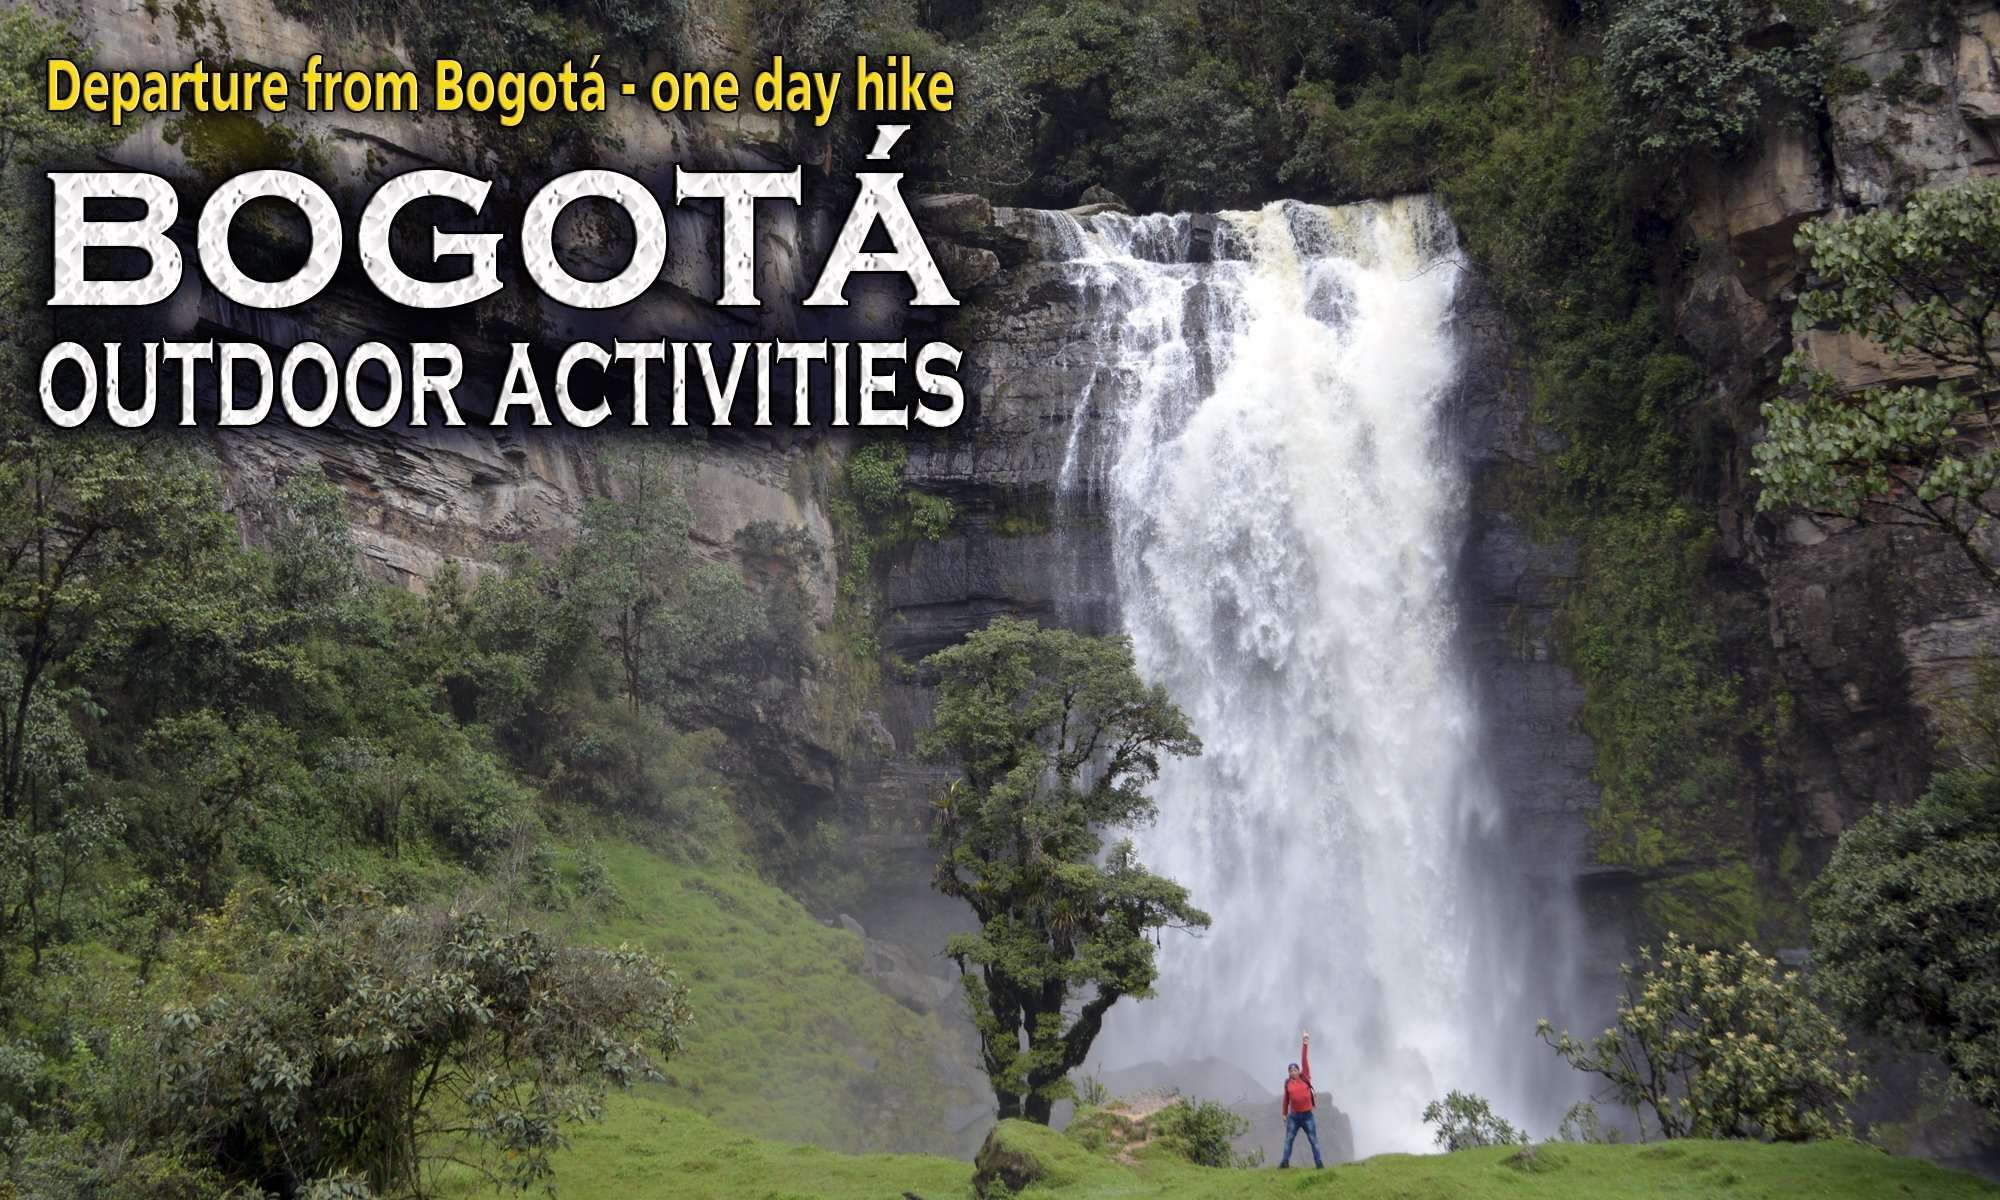 Things to Do in Bogota, Bogota Tourism, Bogota Sightseeing